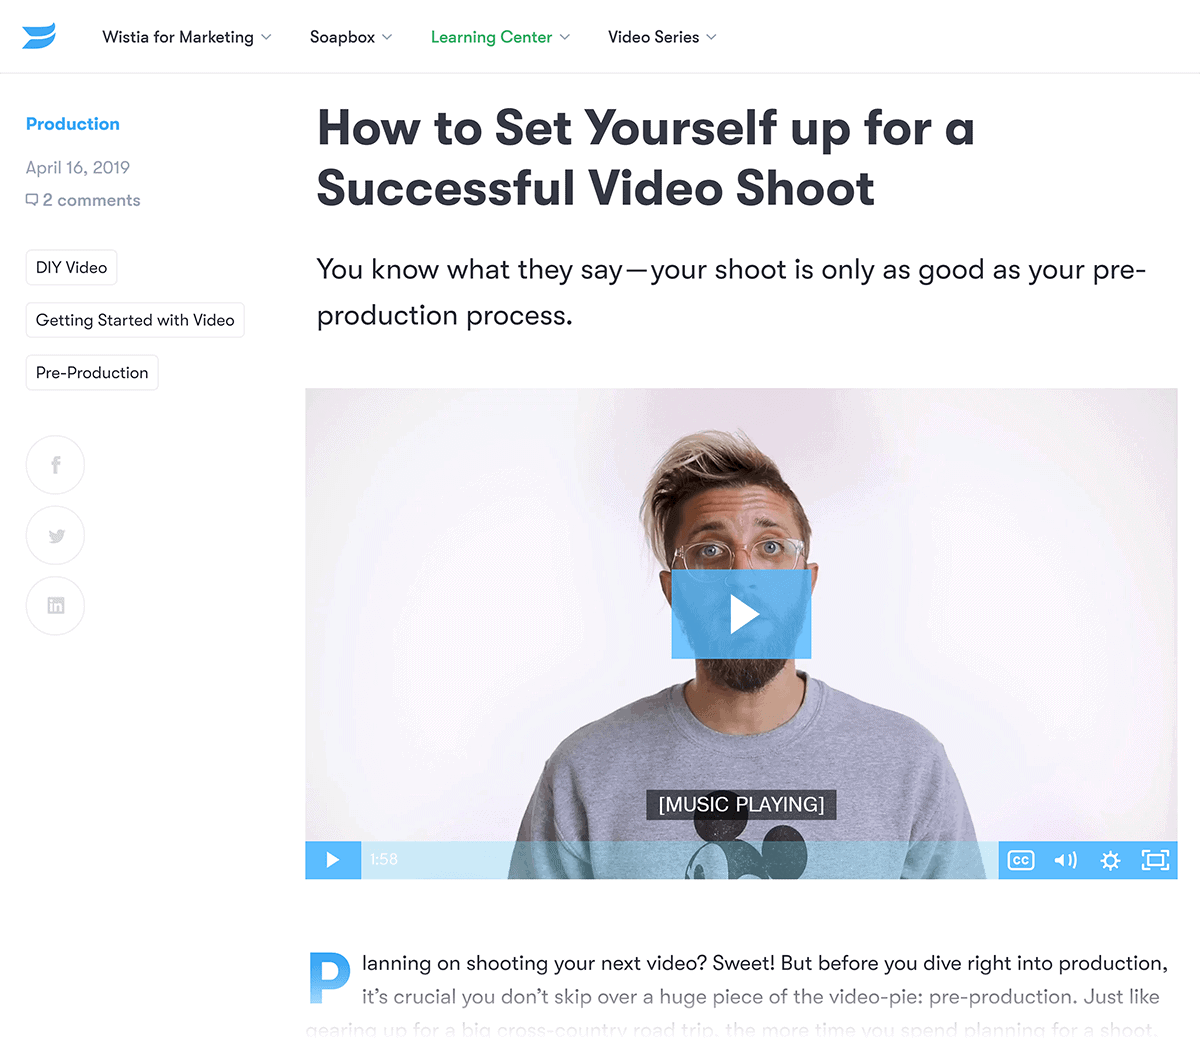 Wistia content on video production